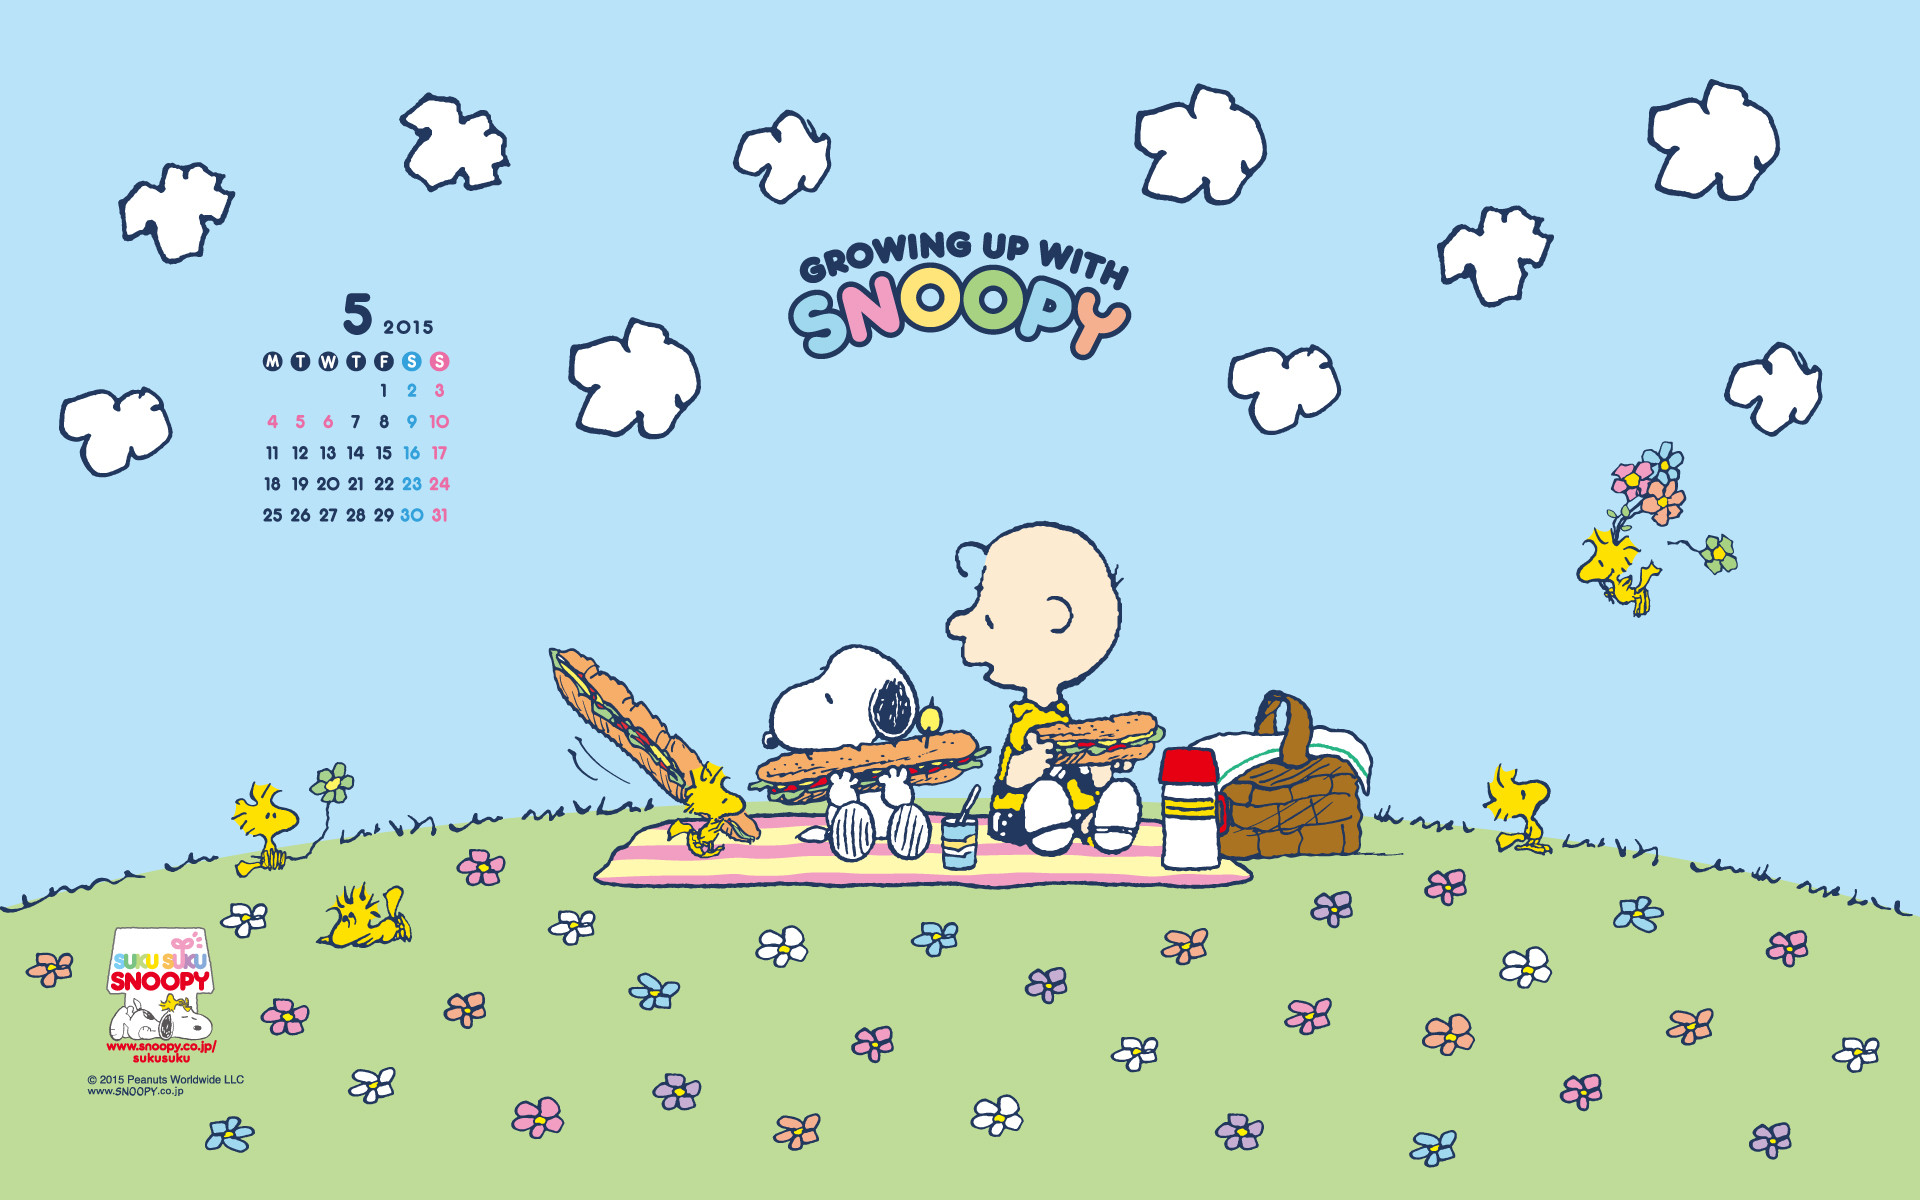 Snoopy Wallpaper Iphone 6 Snoopy And Woodstock Thanksgiving Wallpaper 56 Images